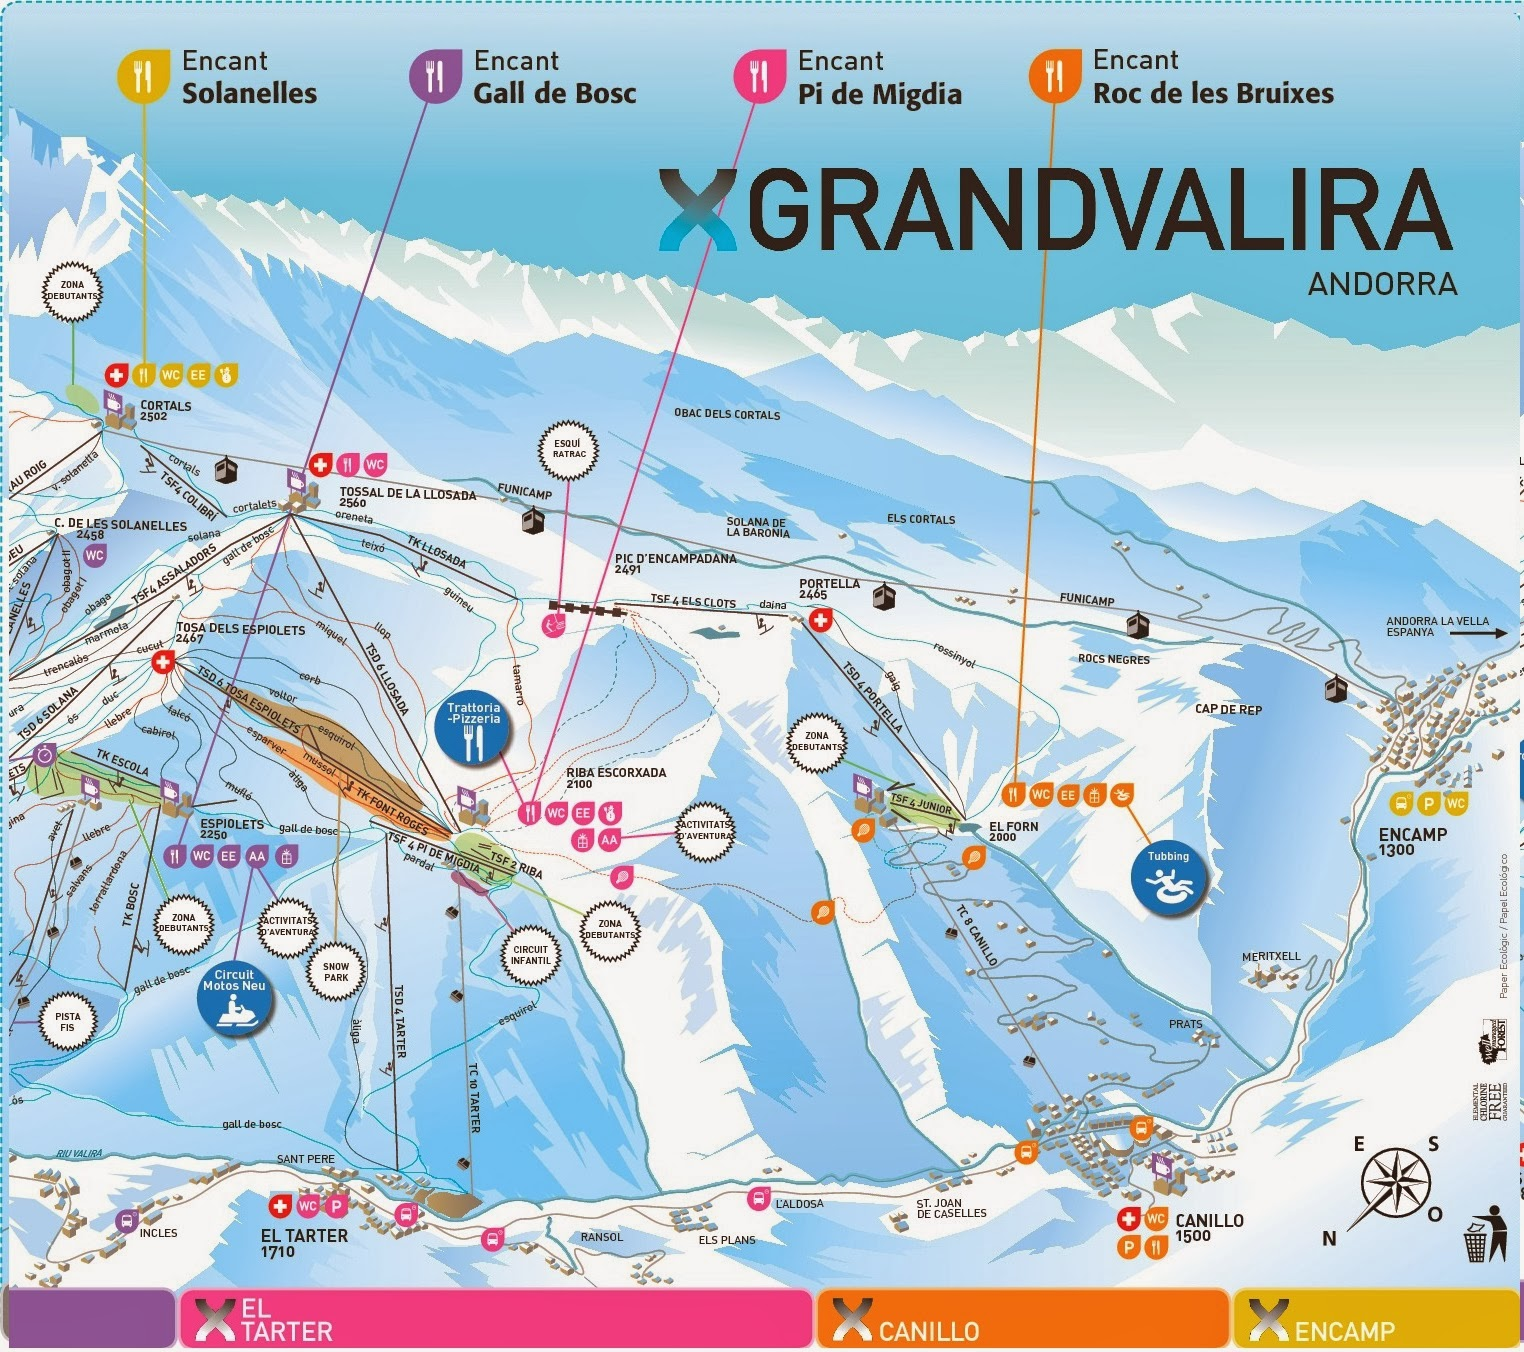 World Ski Resort El Tarter Canillo Encamp